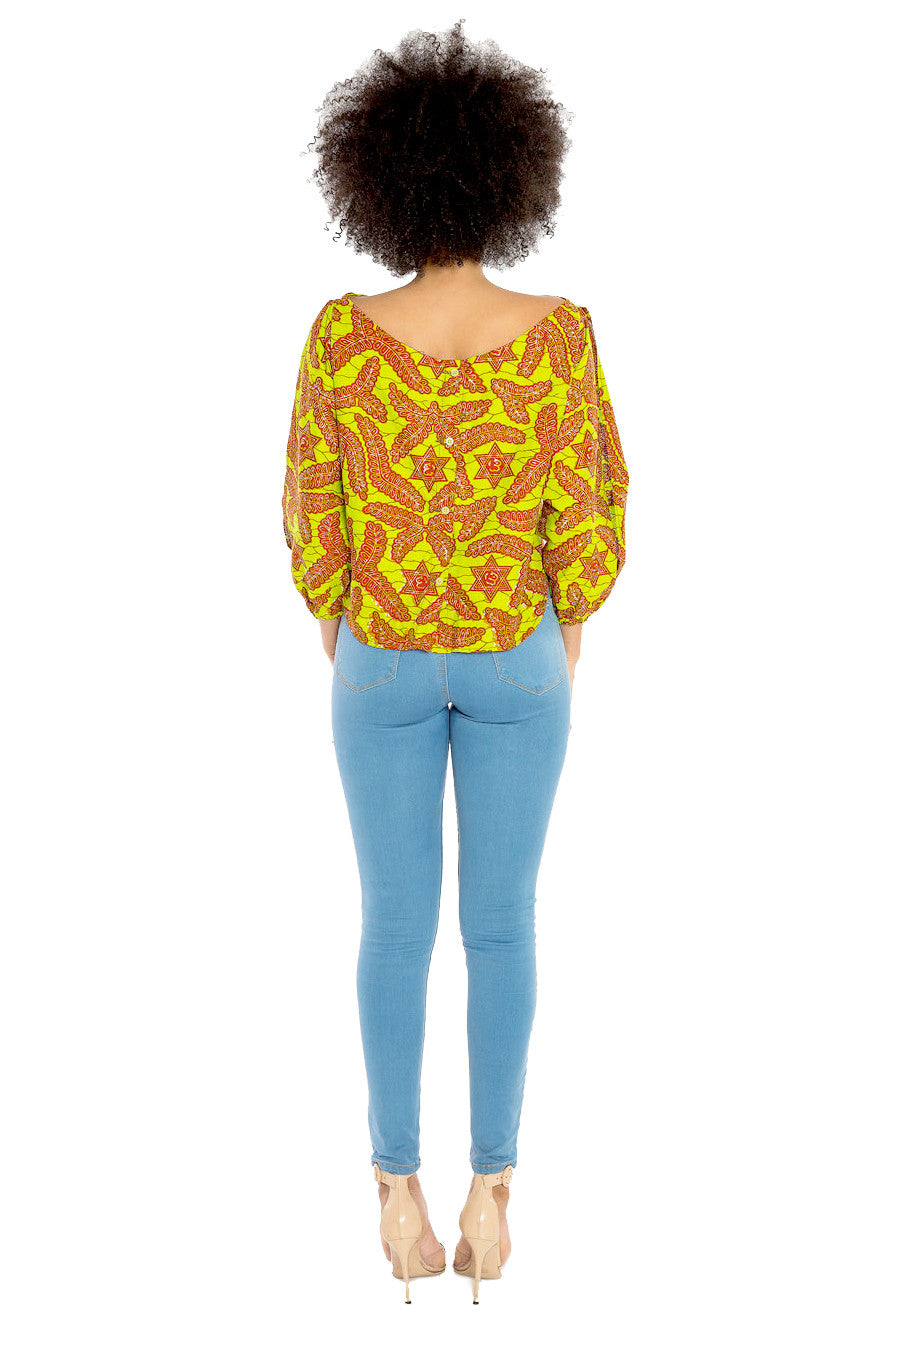 I Have Your Back African Print High Low Top